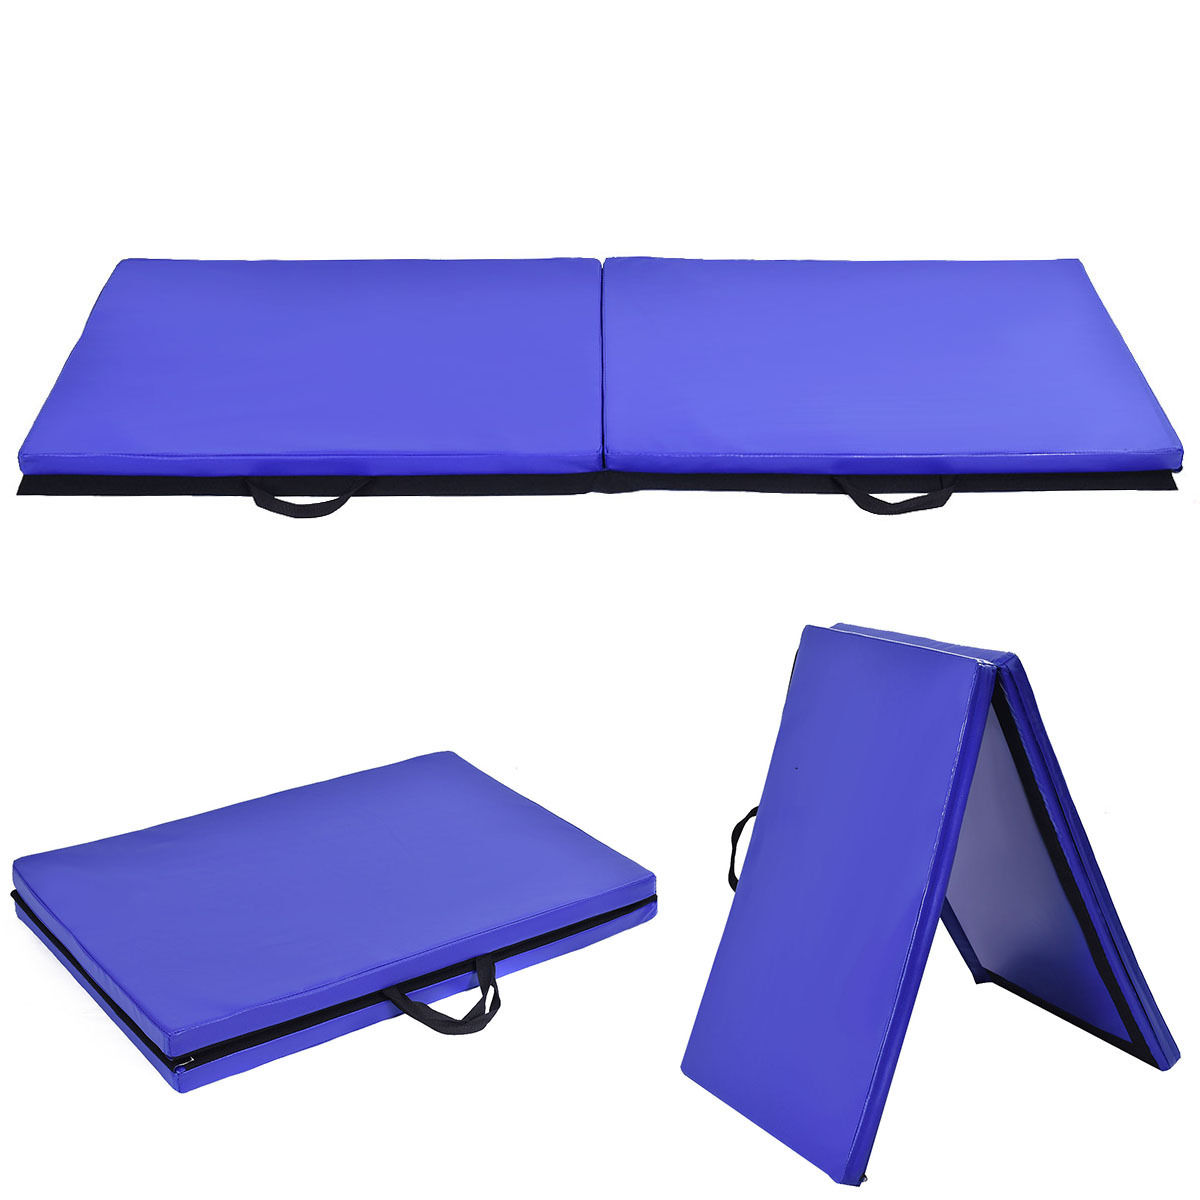 costway 6u0027x 2u0027 gymnastics mat thick two folding panel gym fitness exercise blue